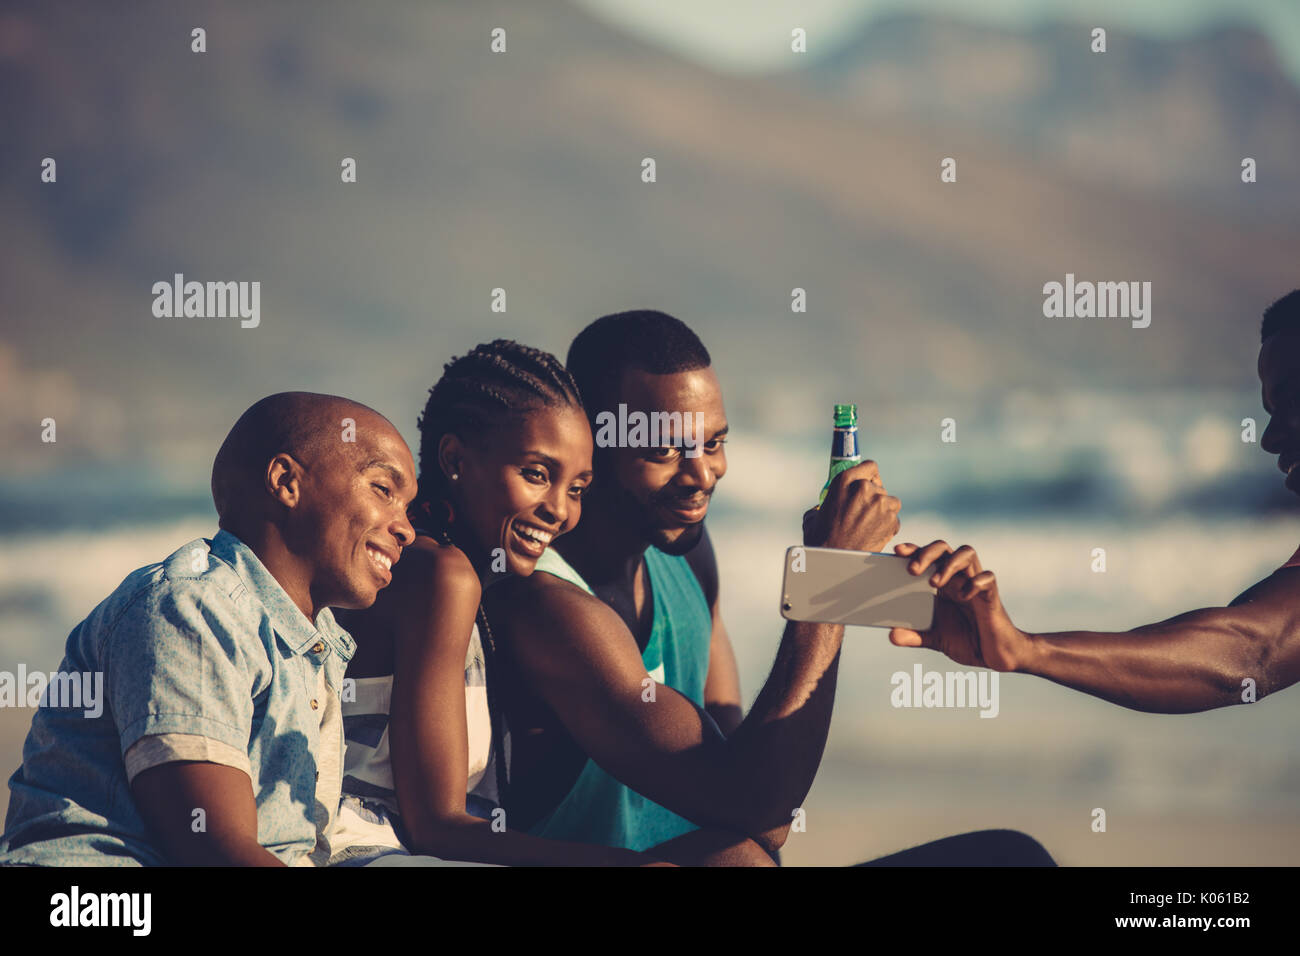 Group of happy friends having fun together and taking selfie using mobile phone. Self portrait at beach party. - Stock Image